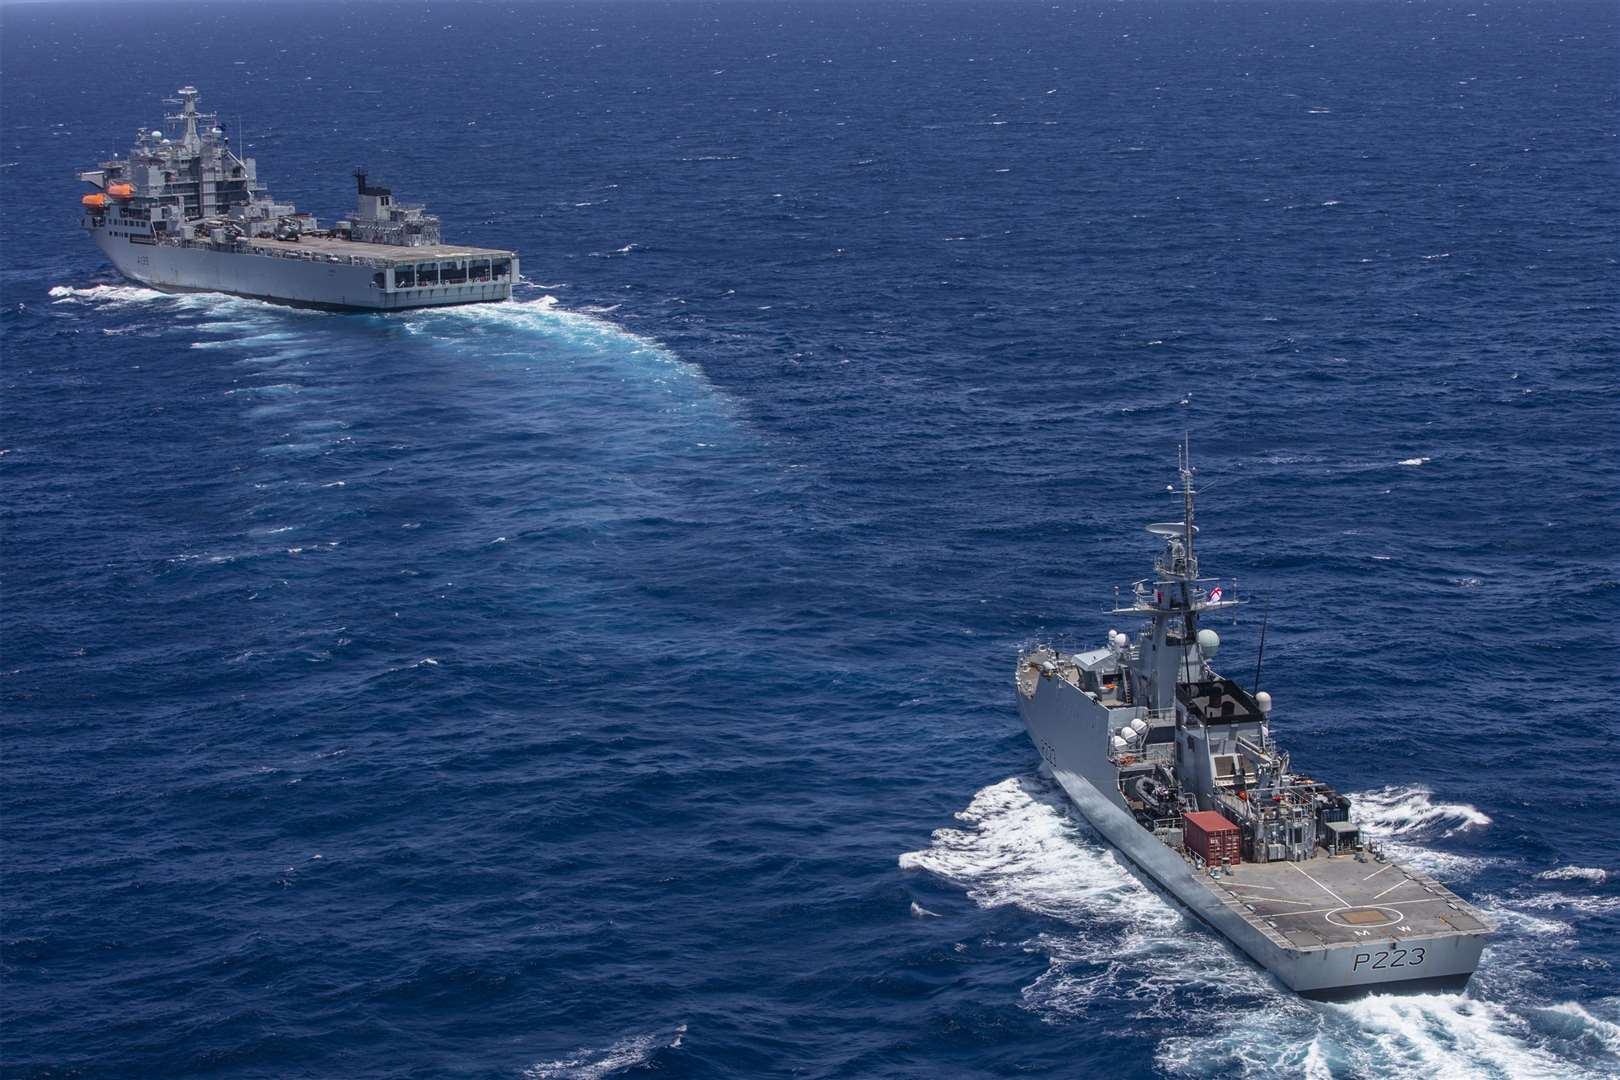 HMS Medway and RFA Argus in the Caribbean Sea